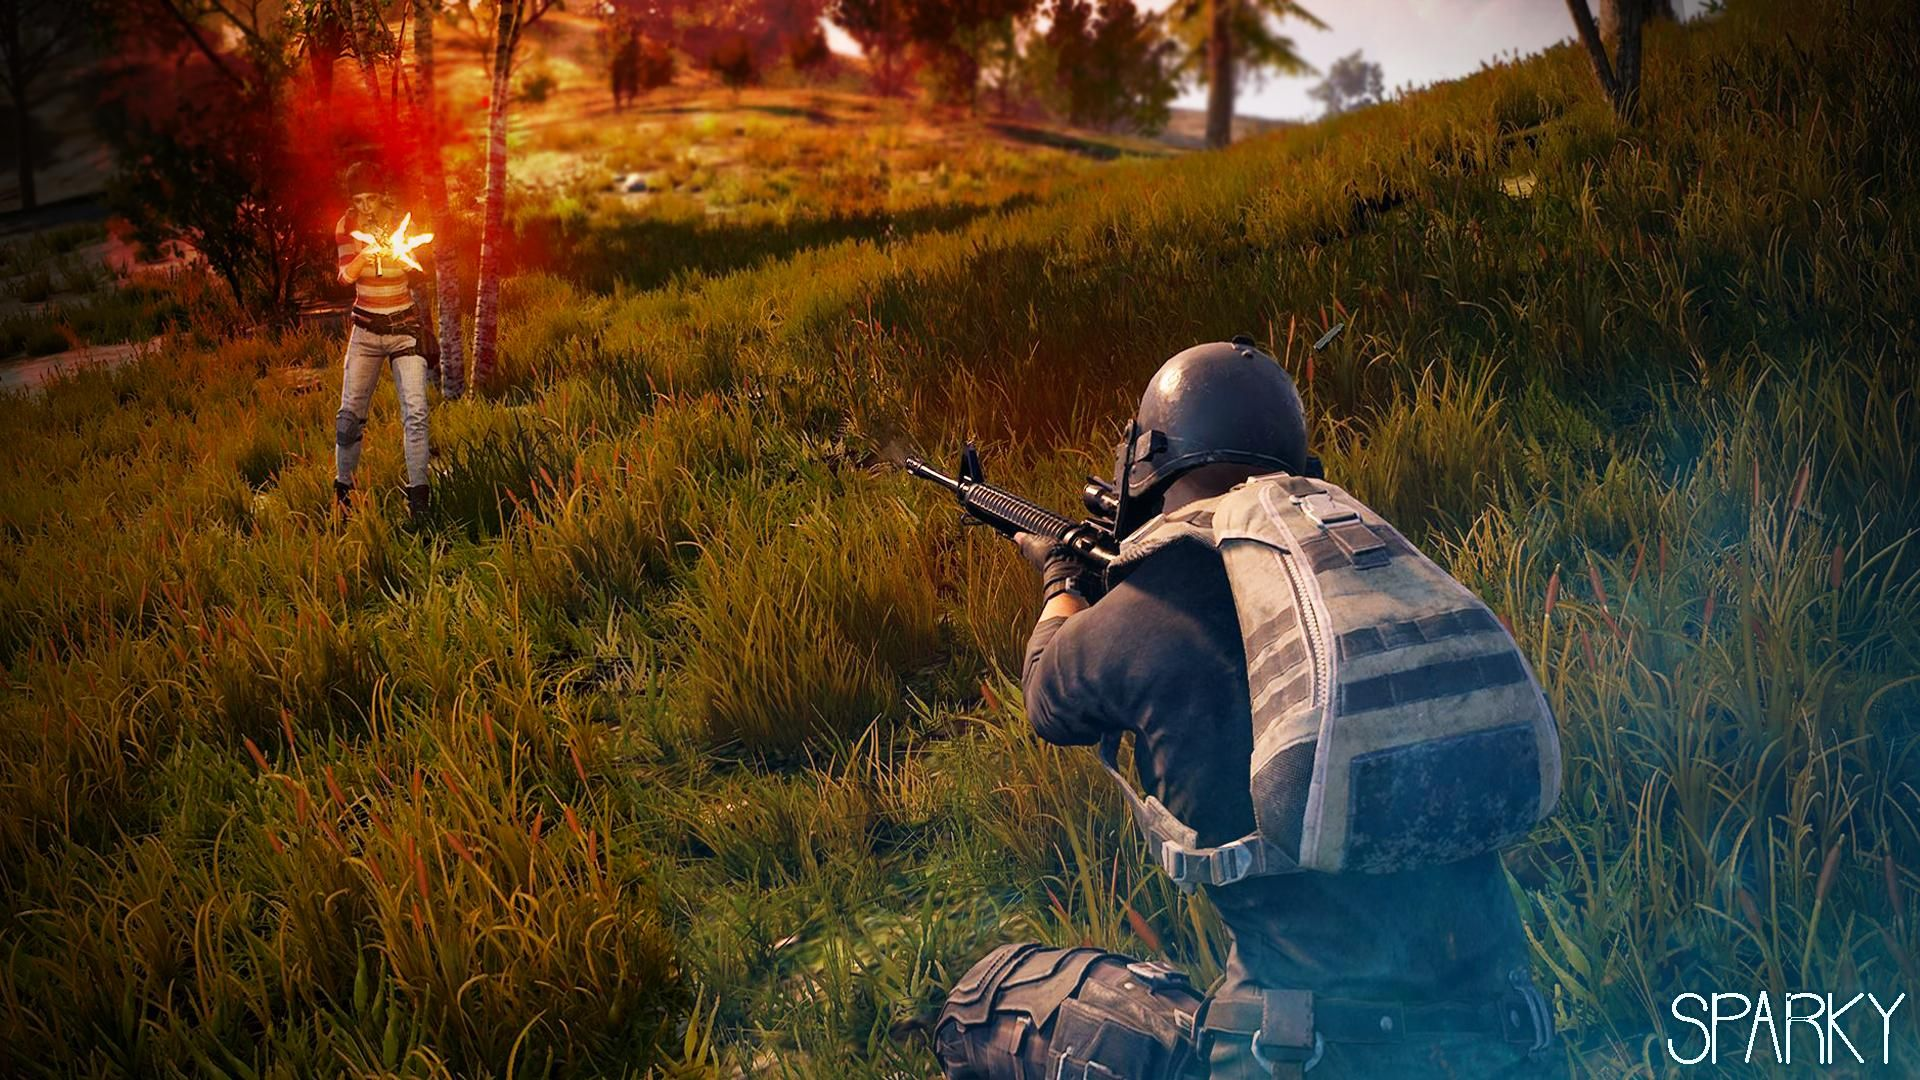 Pubg Mobile Full Screen Wallpapers: Pin On IPhone 6S Plus Wallpapers Must To Have